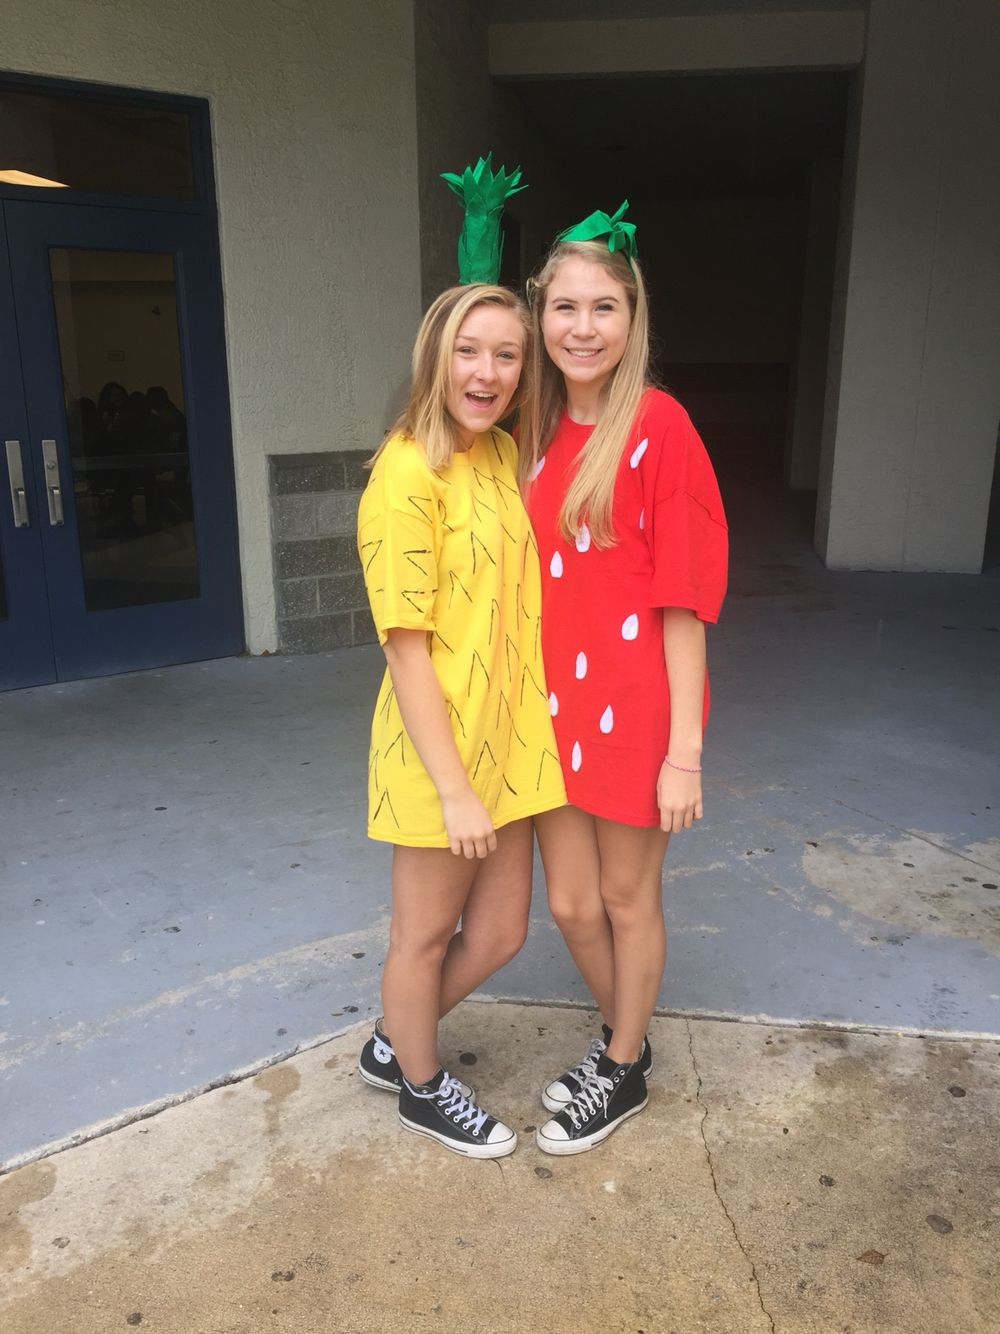 week! Character day strawberry and pineapple